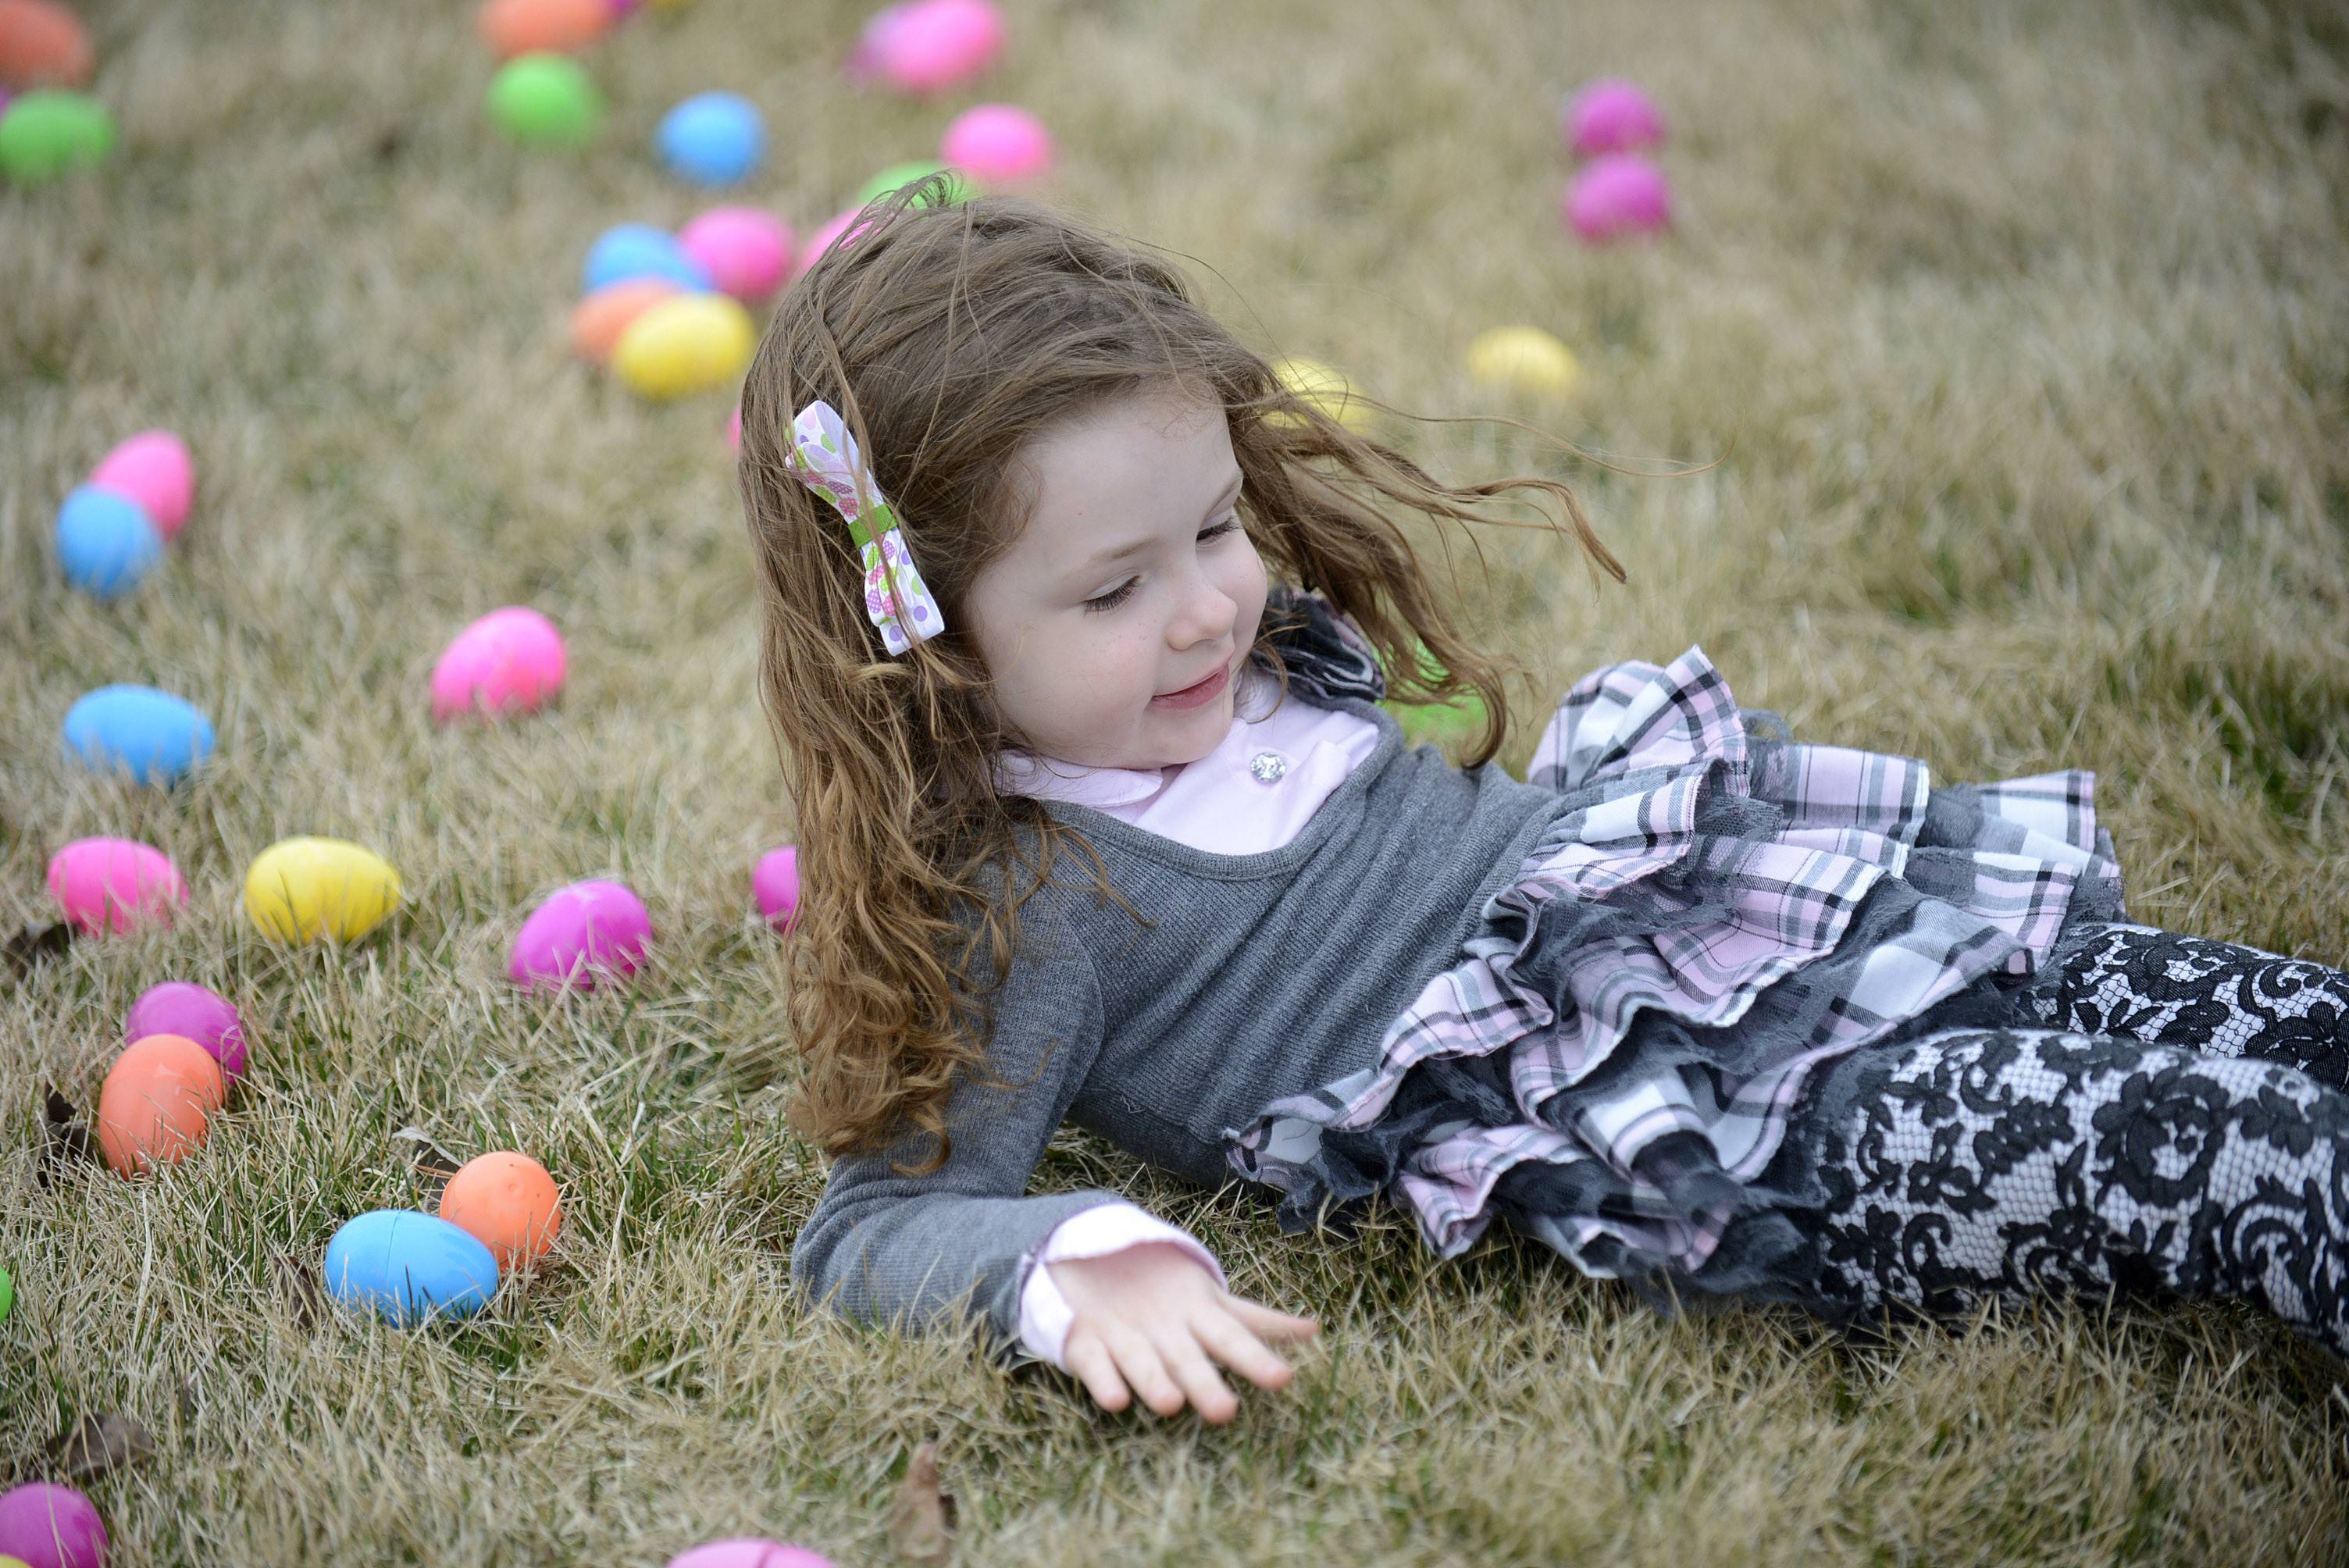 Jordan Cote, 3, of Geneva, rests among plastic eggs after having her picture taken by her parents Saturday at Faith Baptist Mill Creek Creek Church's egg hunt in Geneva.